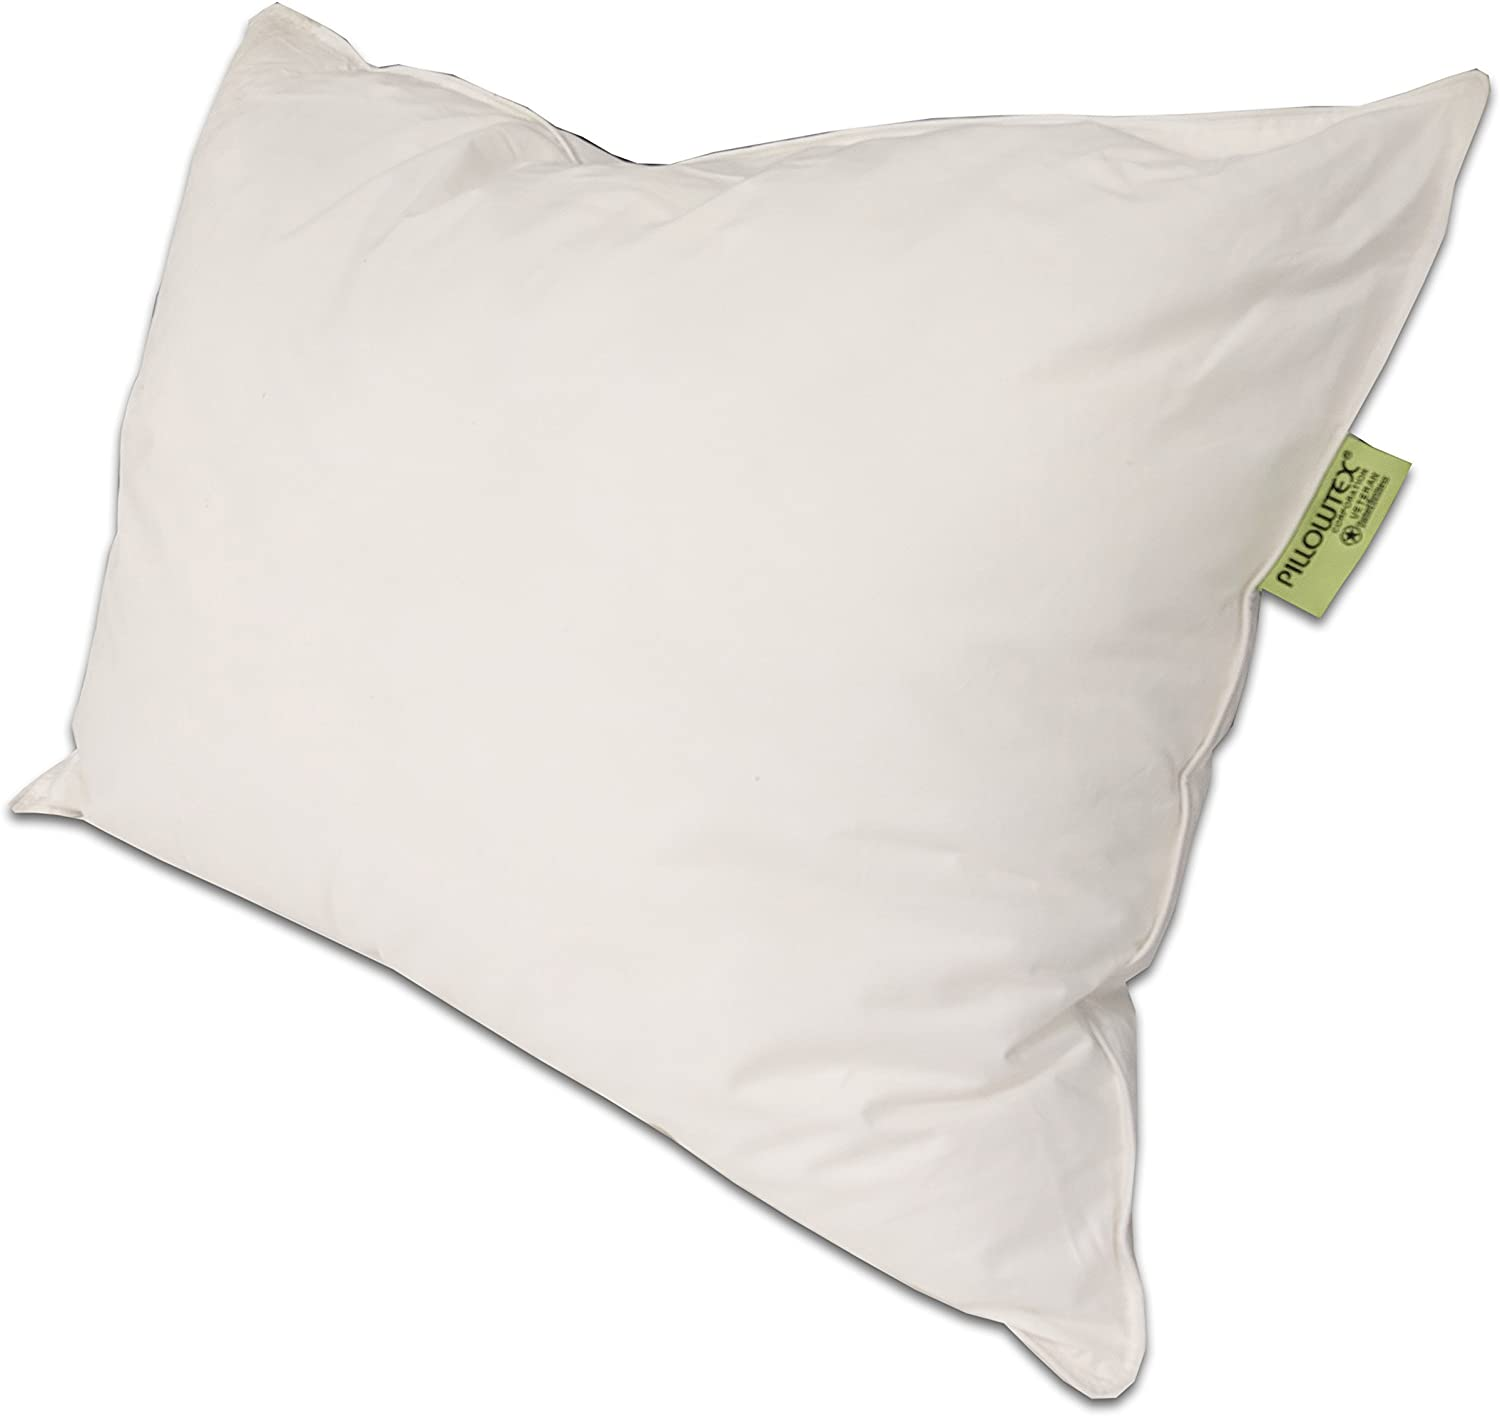 Pillow Similar to Choice Hotels - Soft and Firm Hotel Bed Pillows for Optimal Sleeping - Soft King